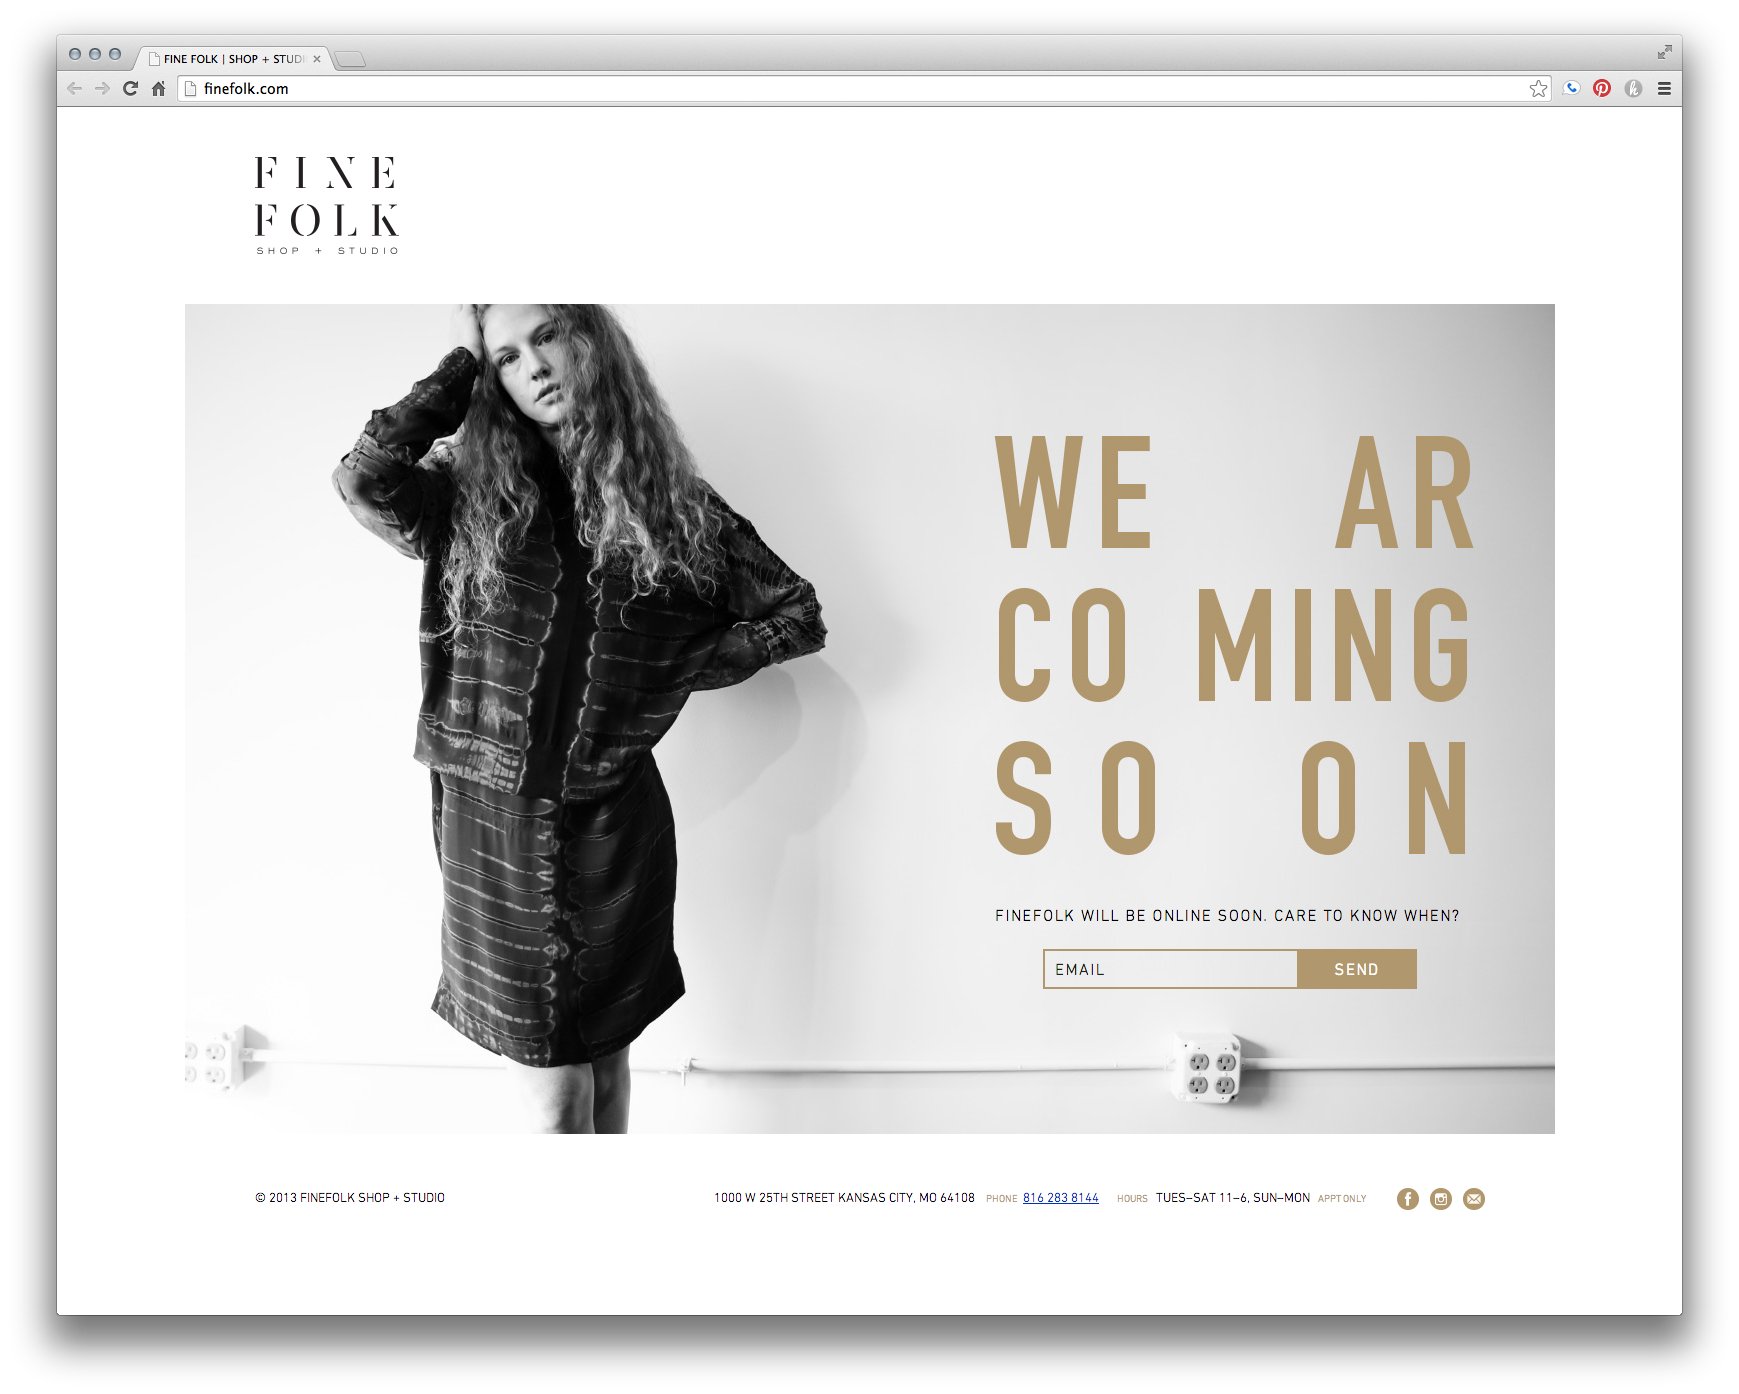 A Clean And Minimalist Web Design And Website Layout Perfect For A Lookbook Or Fashion Minimalist Web Design Website Design Inspiration Fashion Website Design